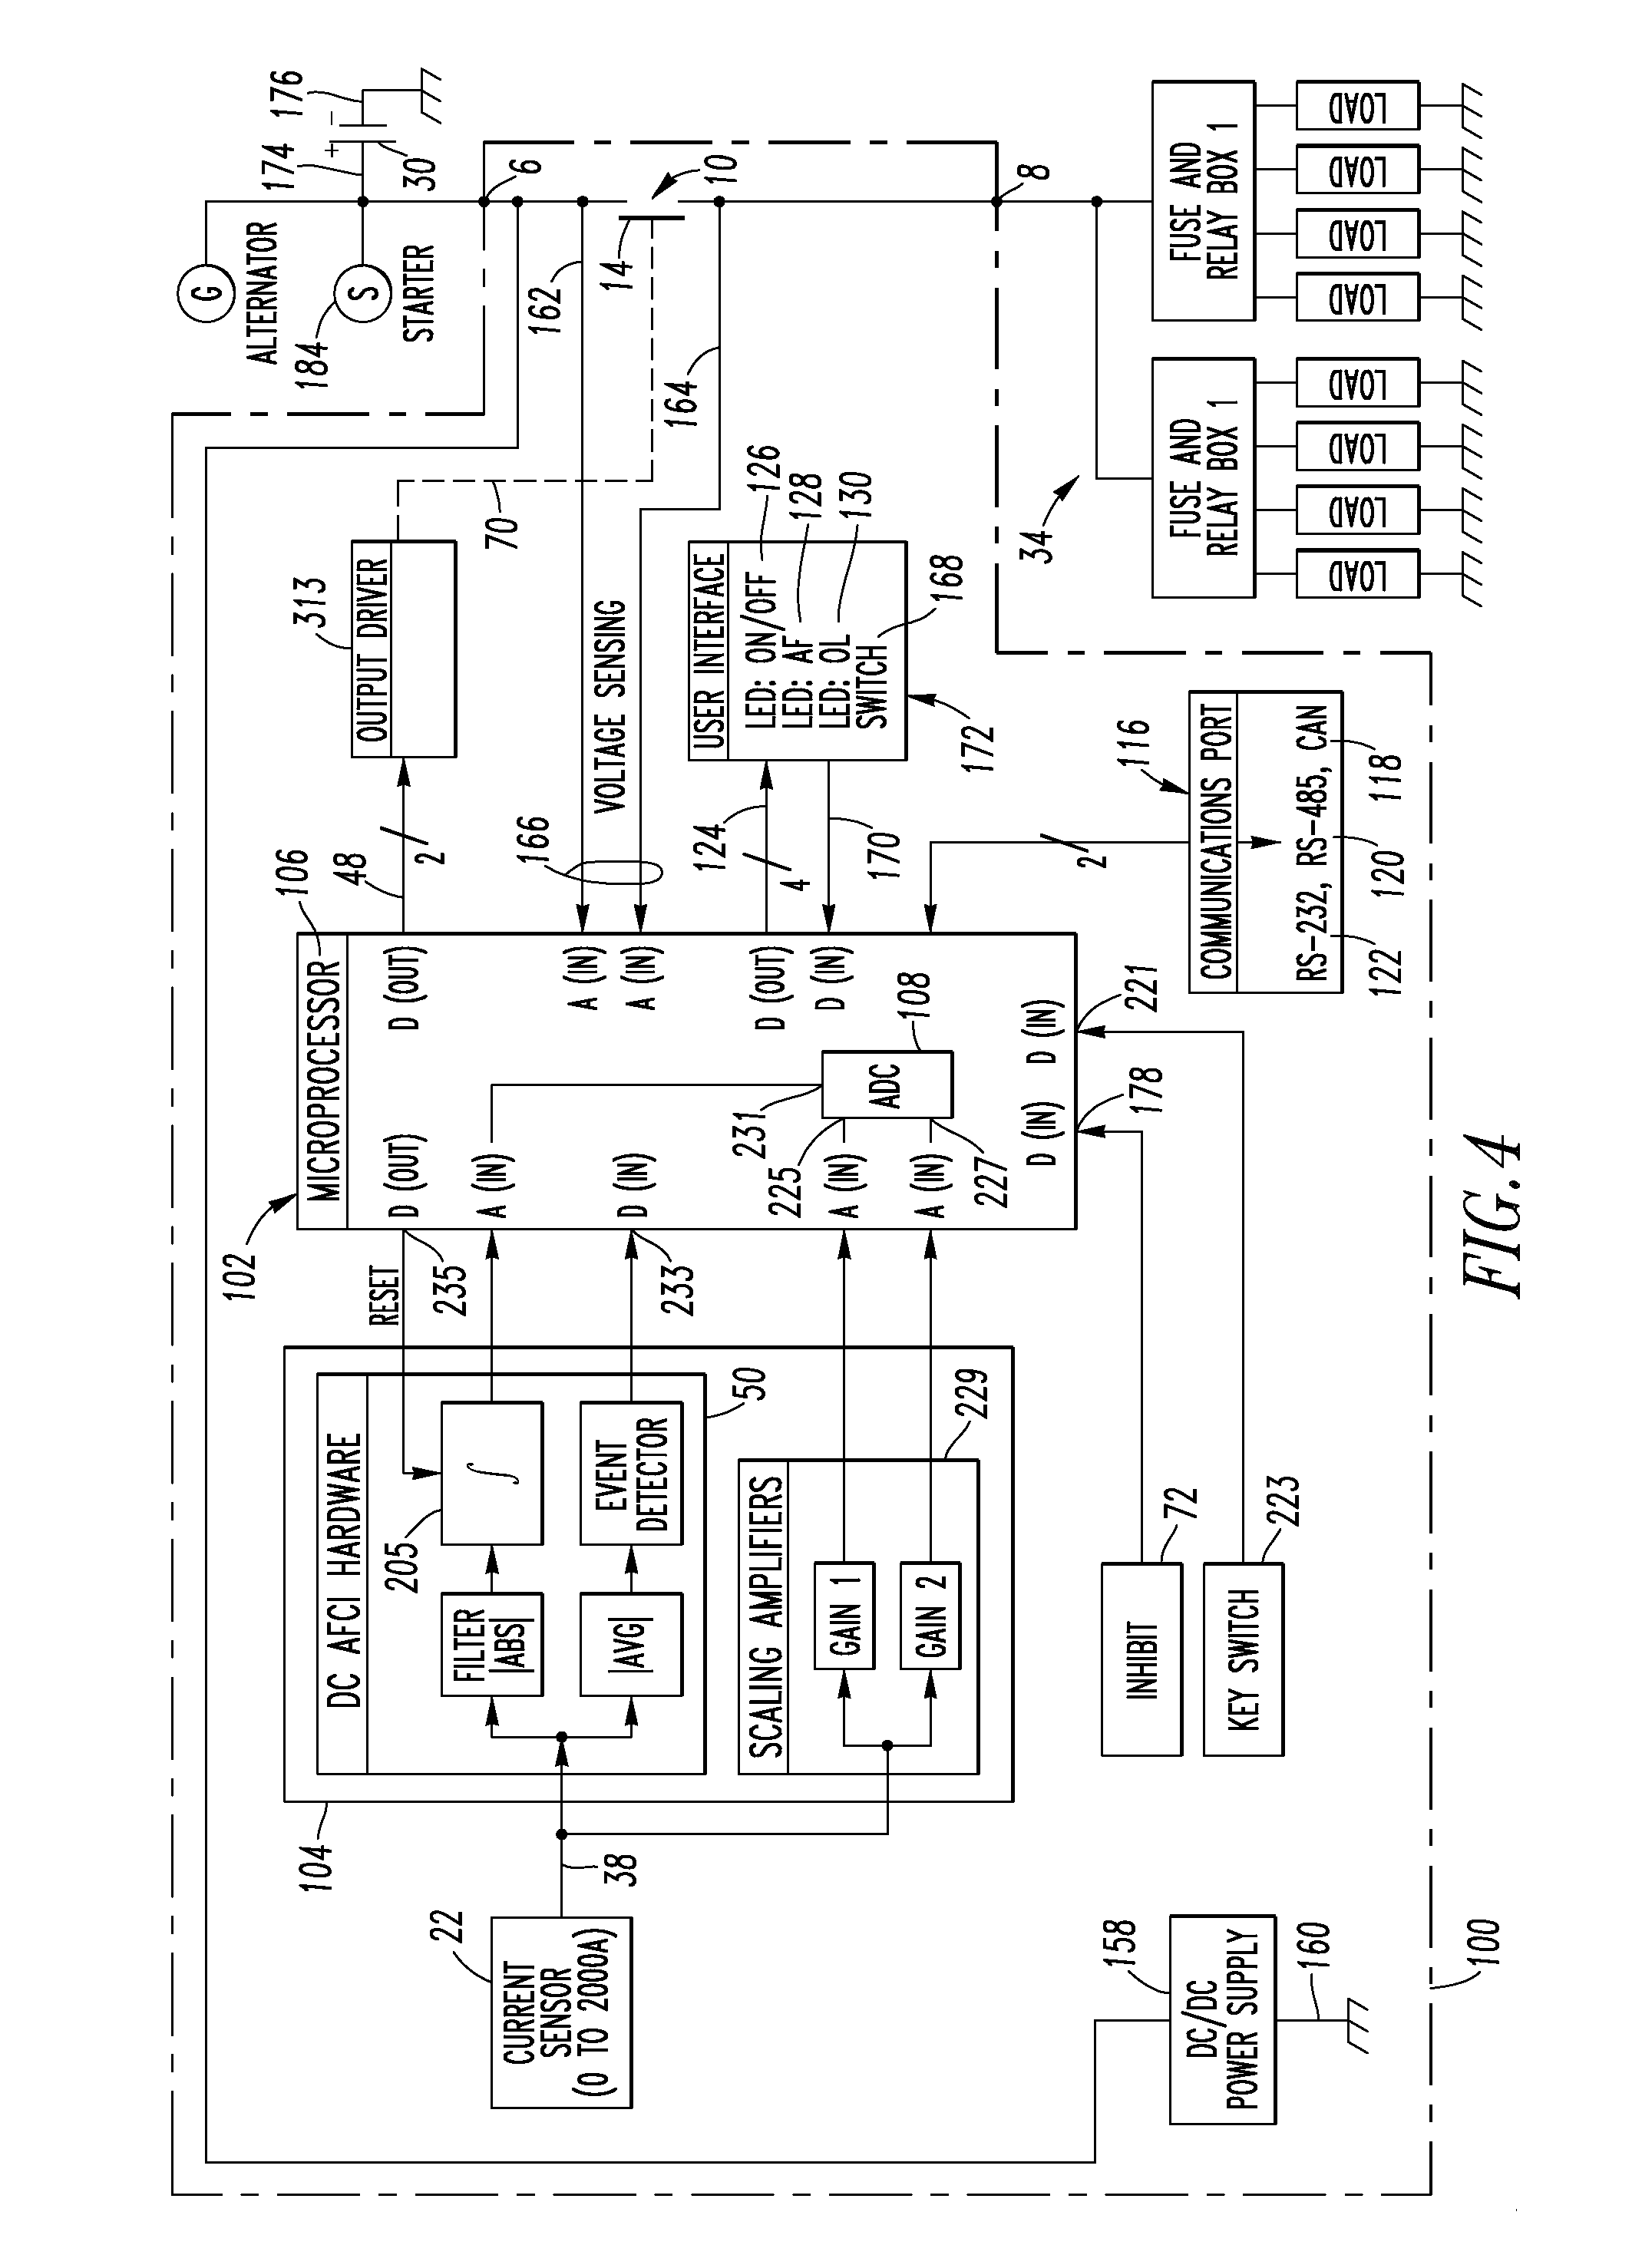 magnetek 6600 power converter wiring diagram